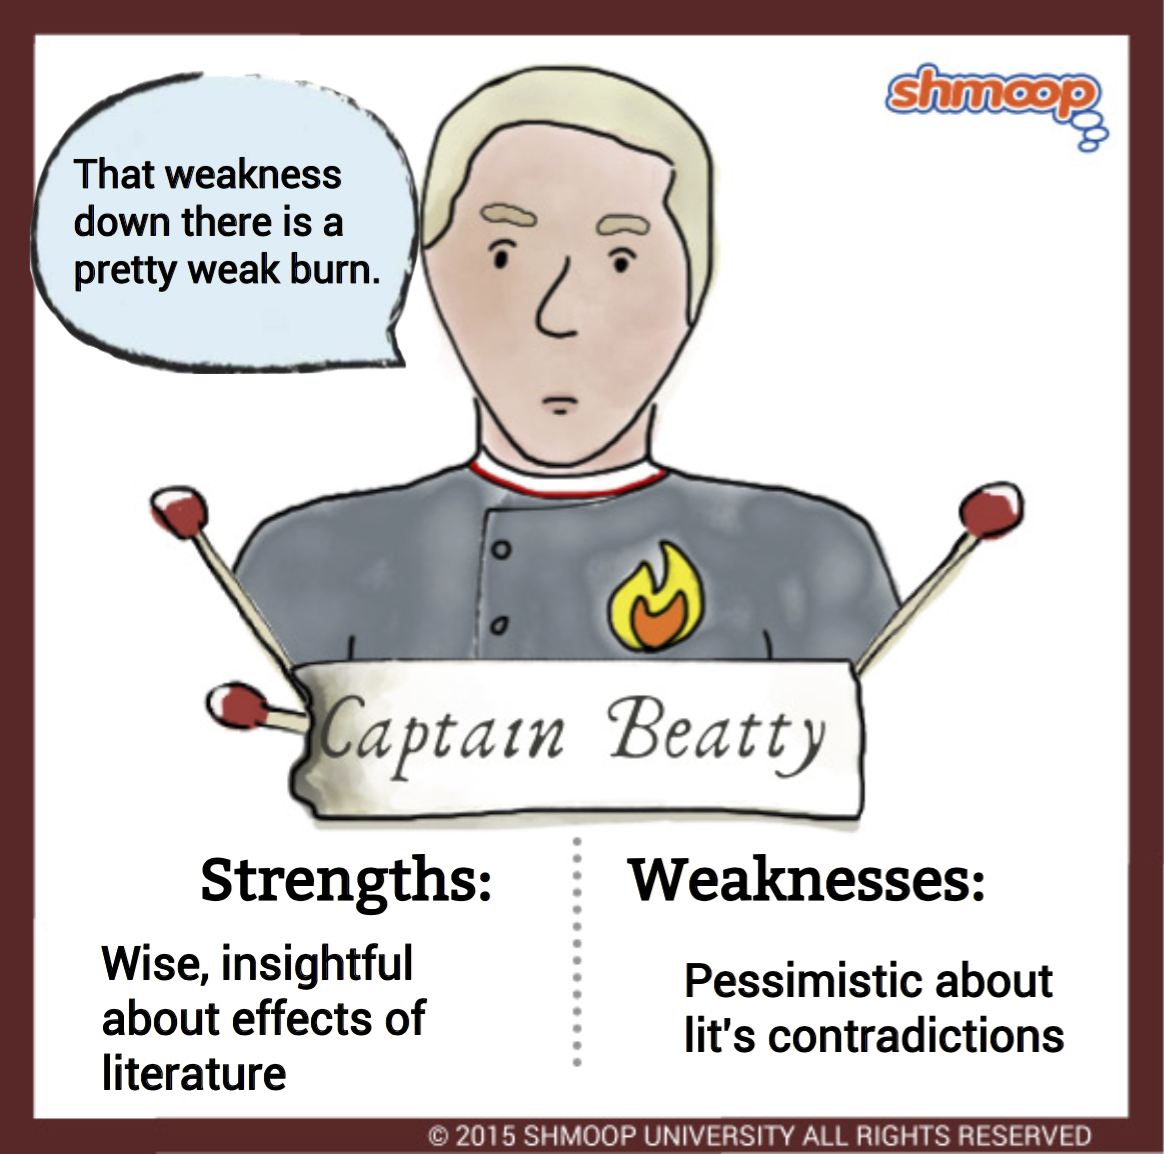 Captain Beatty in Fahrenheit 451